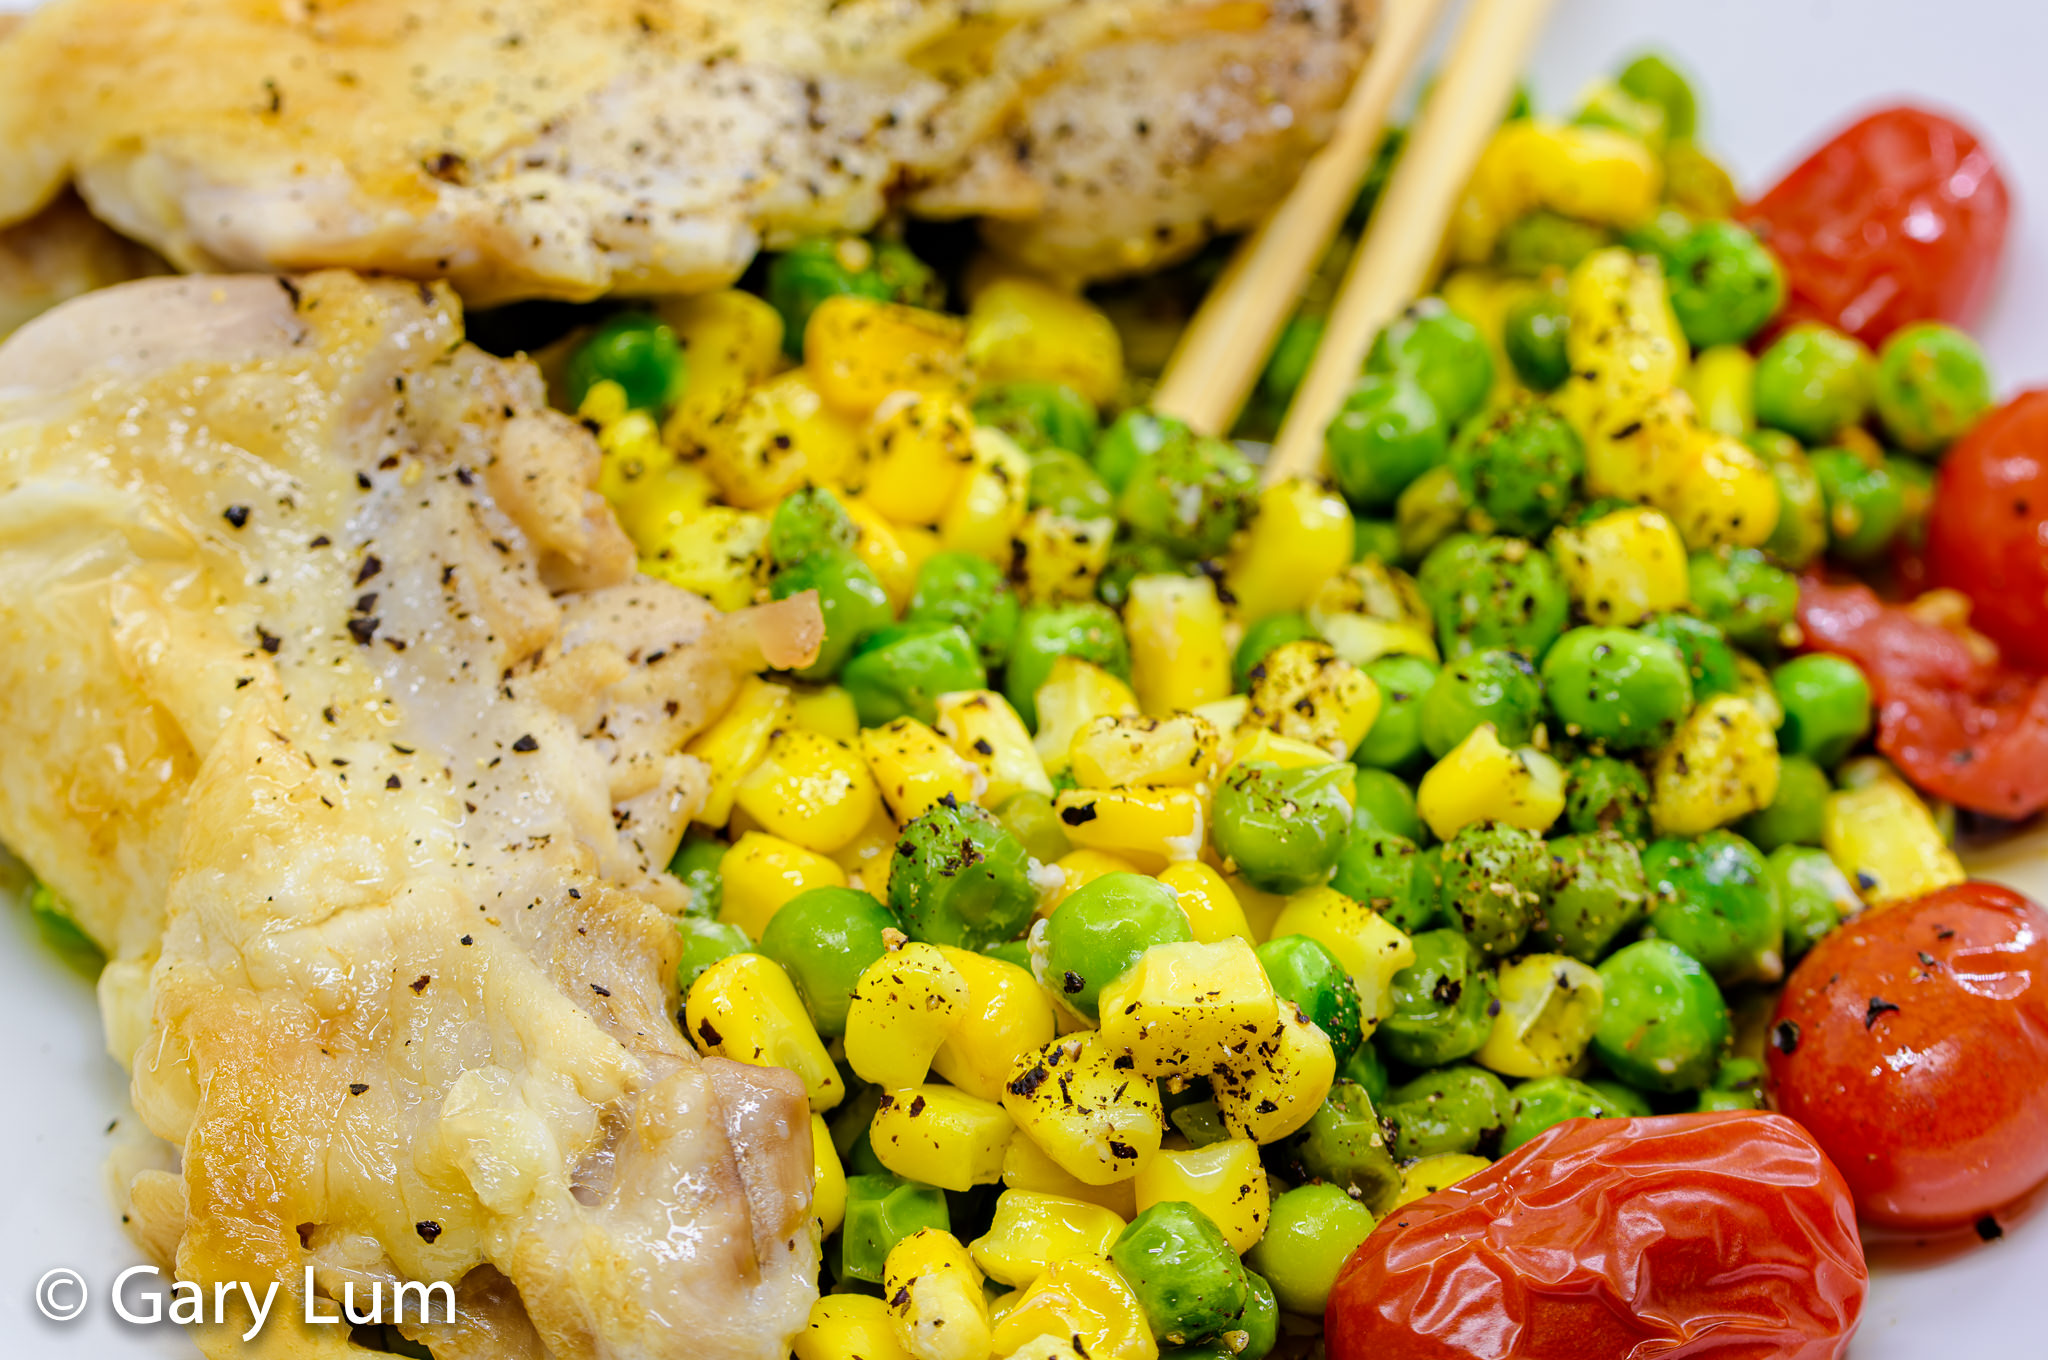 Close up. Deboned oven cooked chicken thigh and drumstick with peas, corn, and cherry tomatoes. Gary Lum.